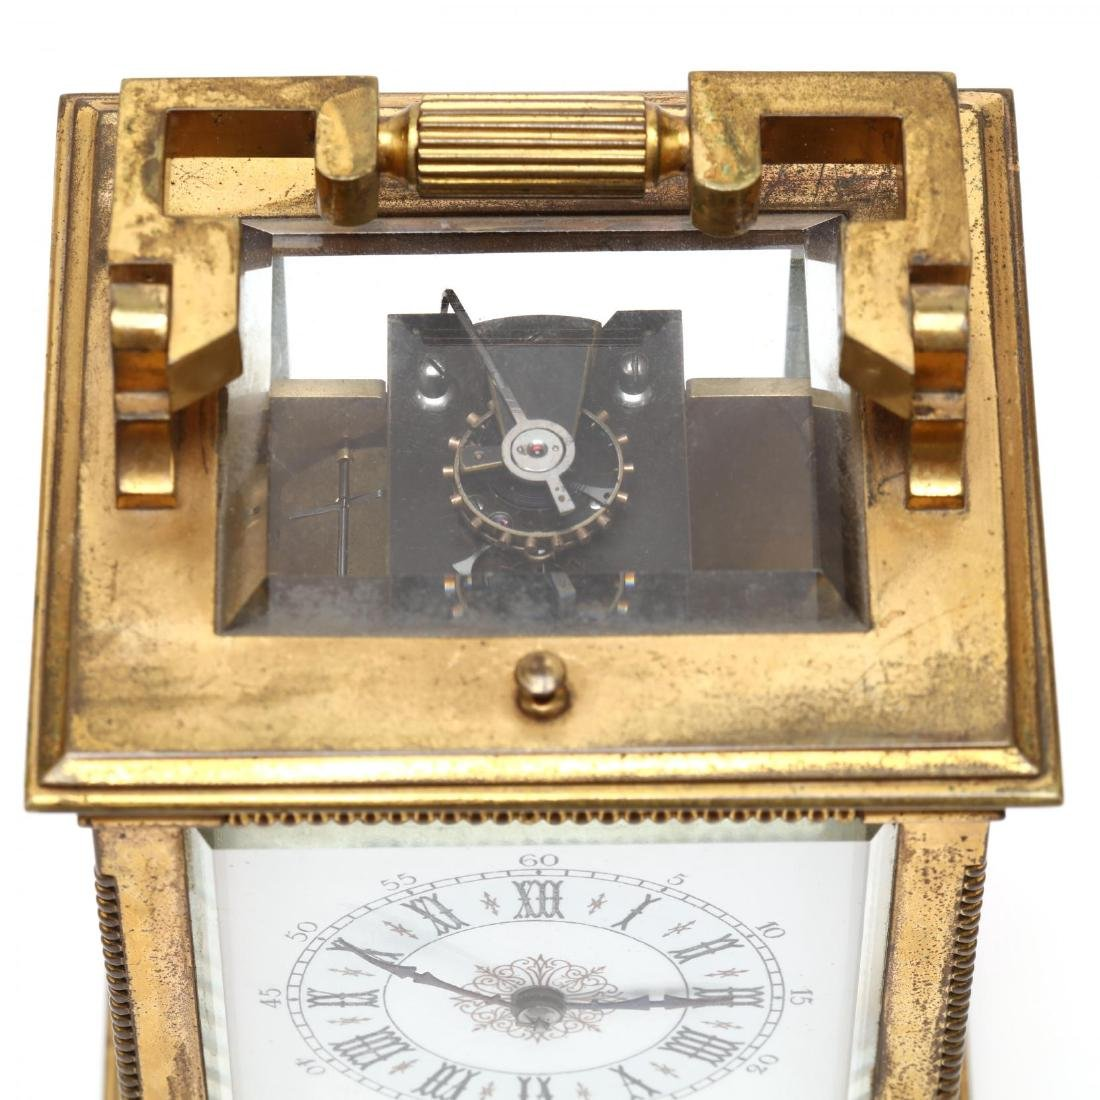 Mitchell Vance & Co., Gilt Bronze Carriage Clock - 9